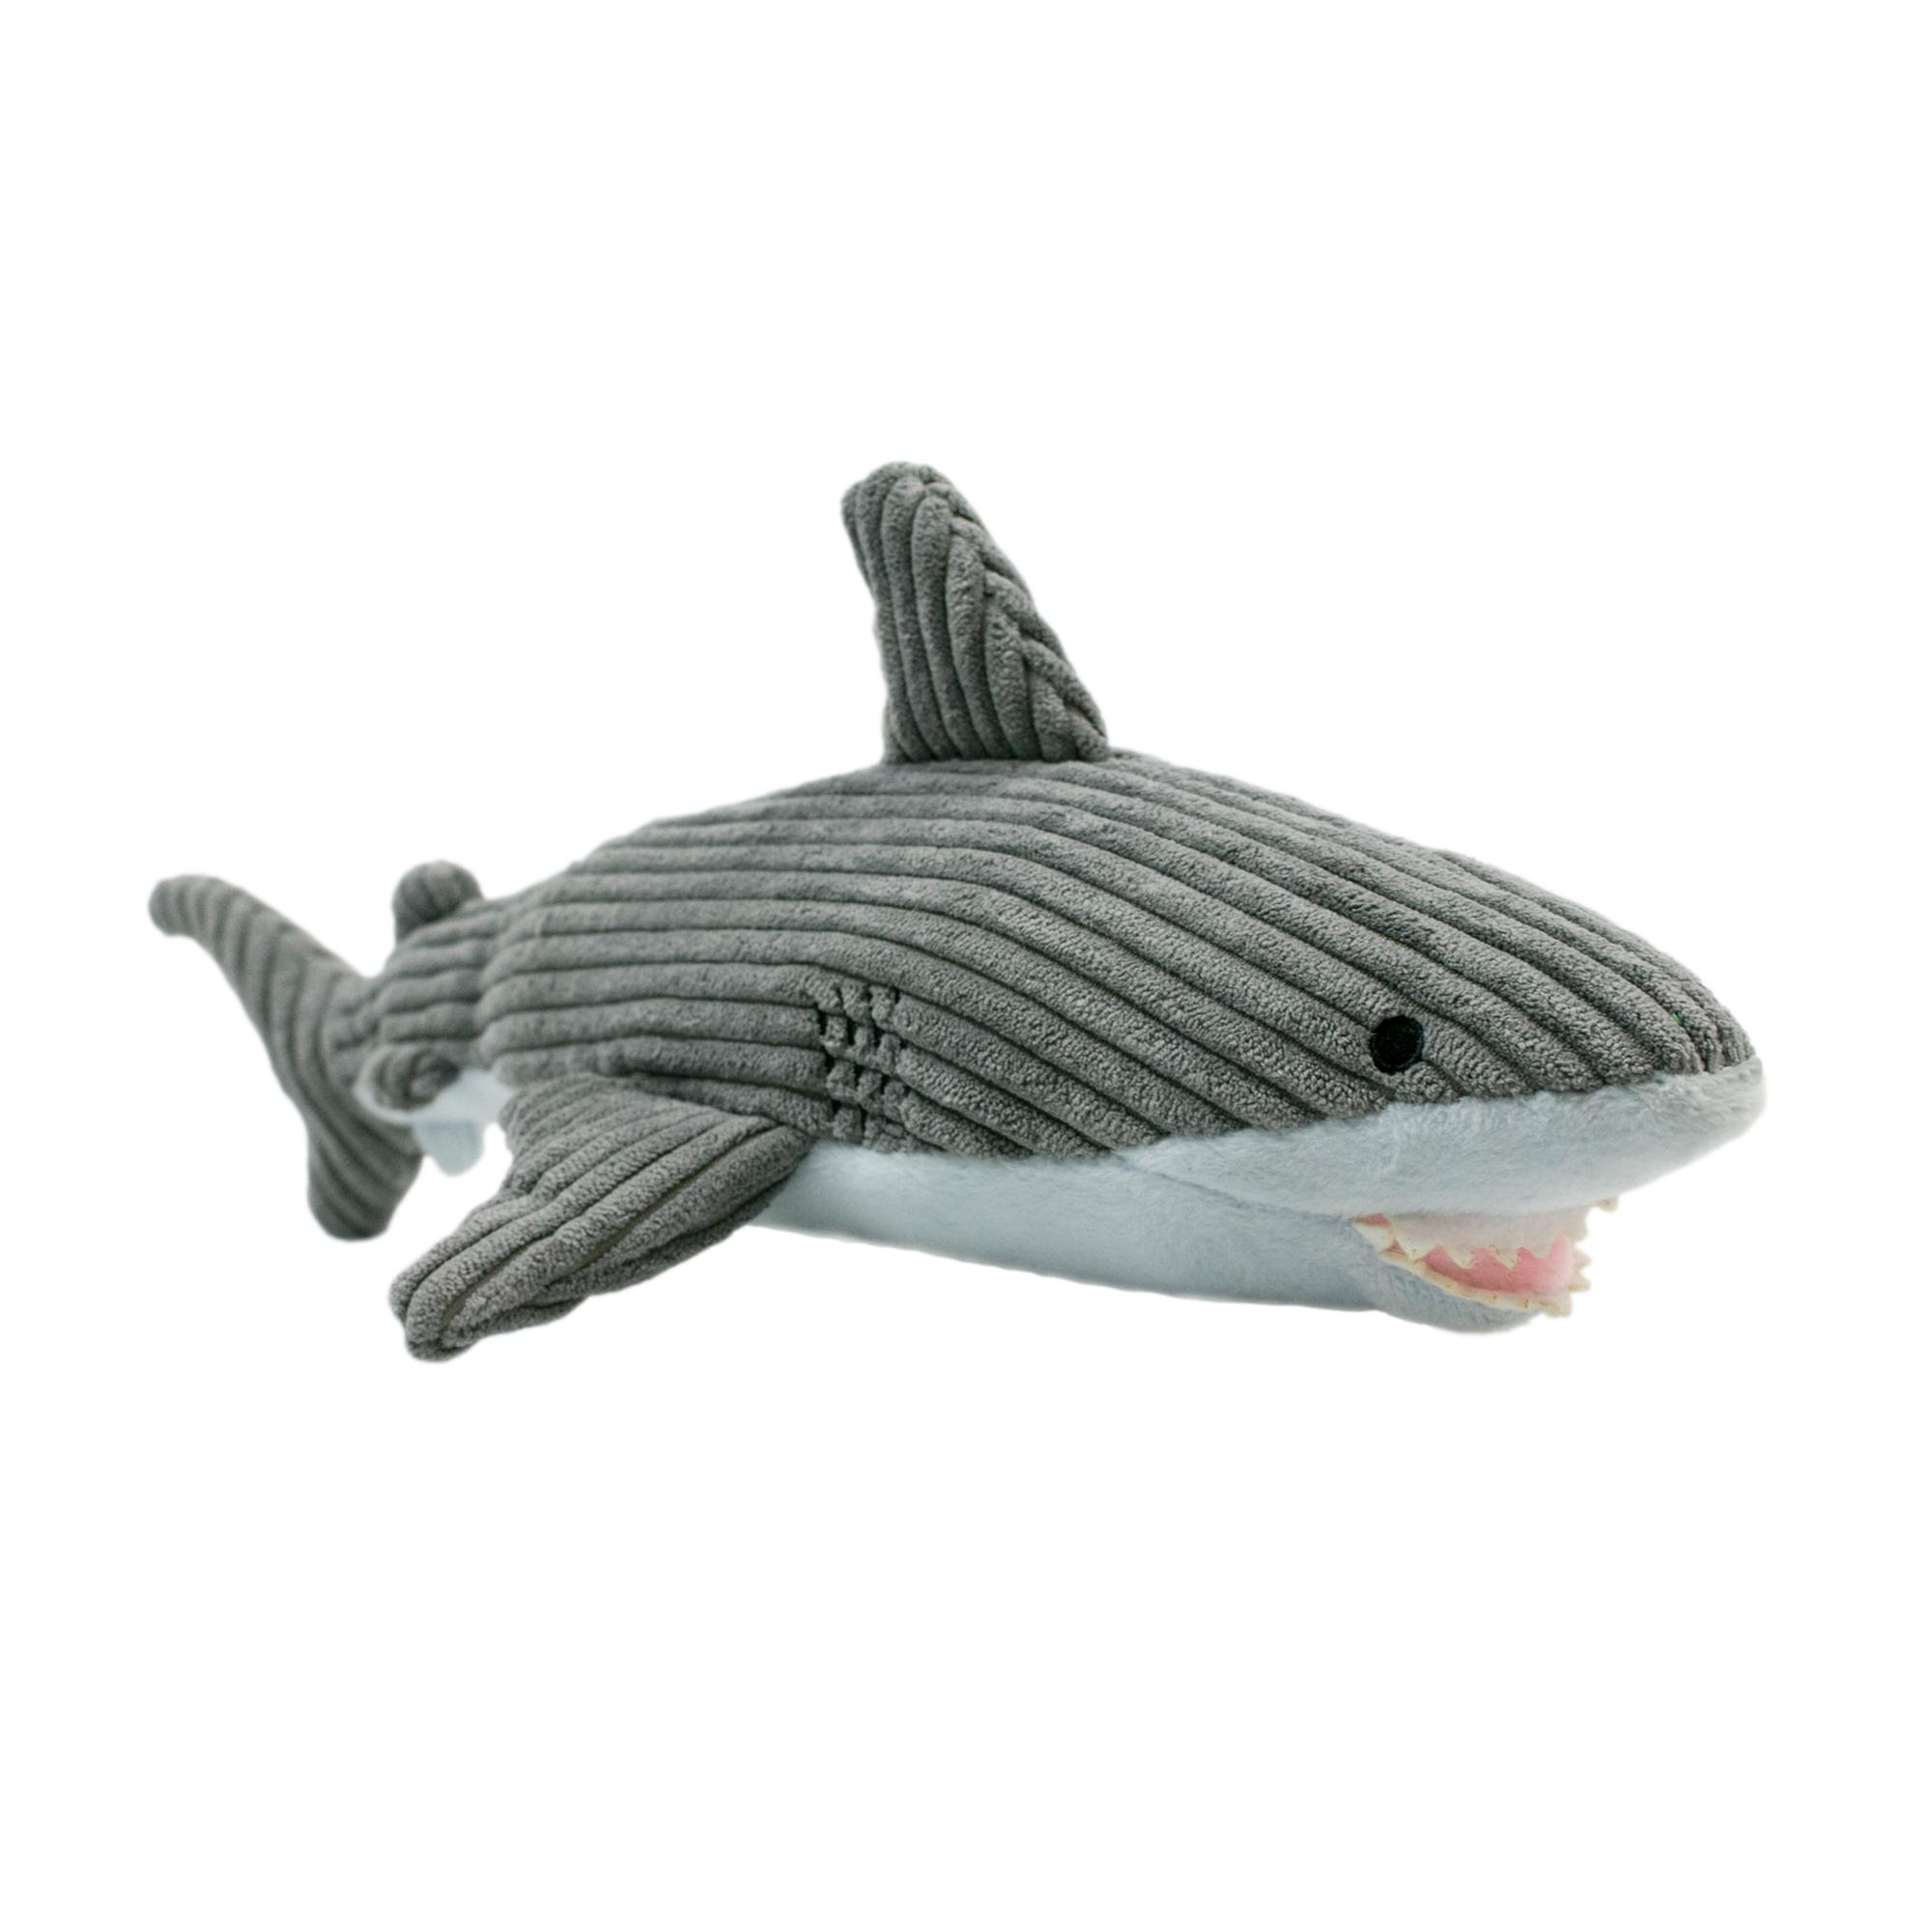 Tall Tails Crunch Shark Dog Toy, 12-in.